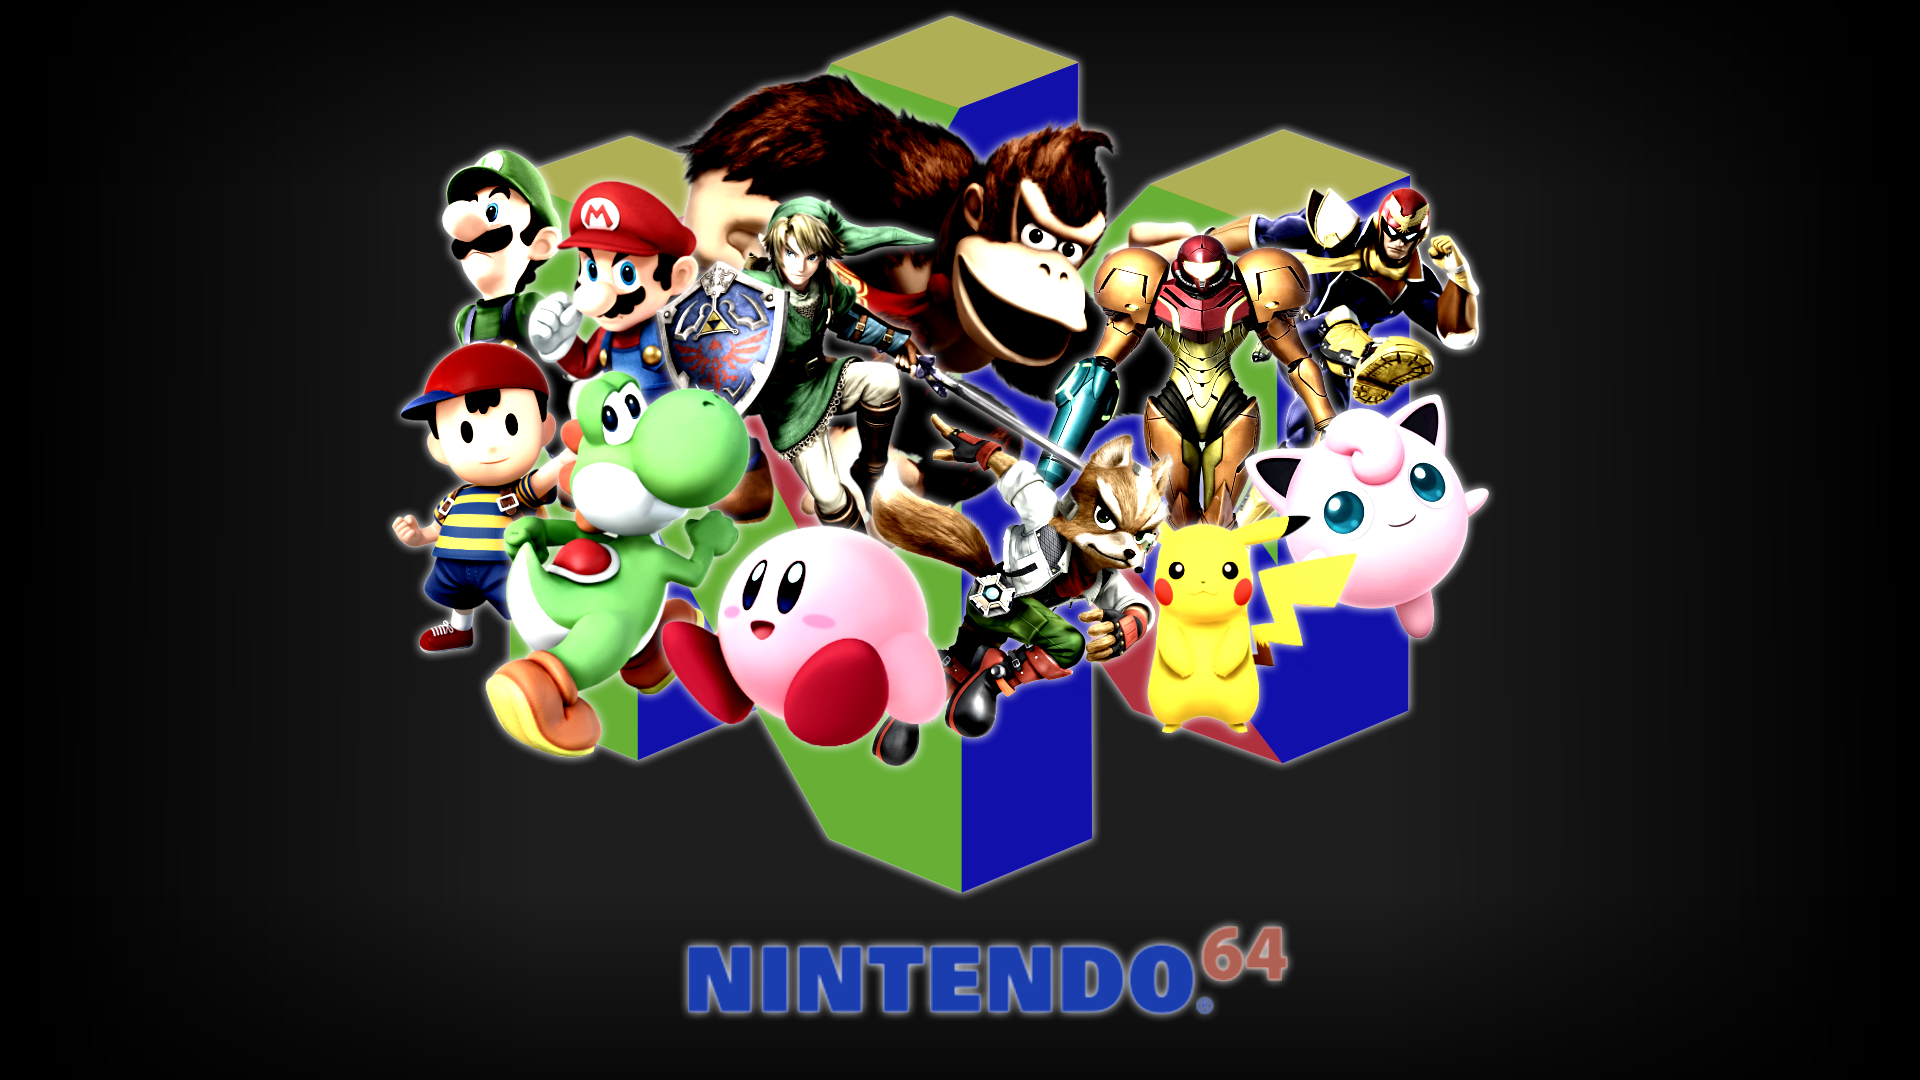 Super Smash Bros Wallpaper Vibrant 1920x1080 By Cookedemil On